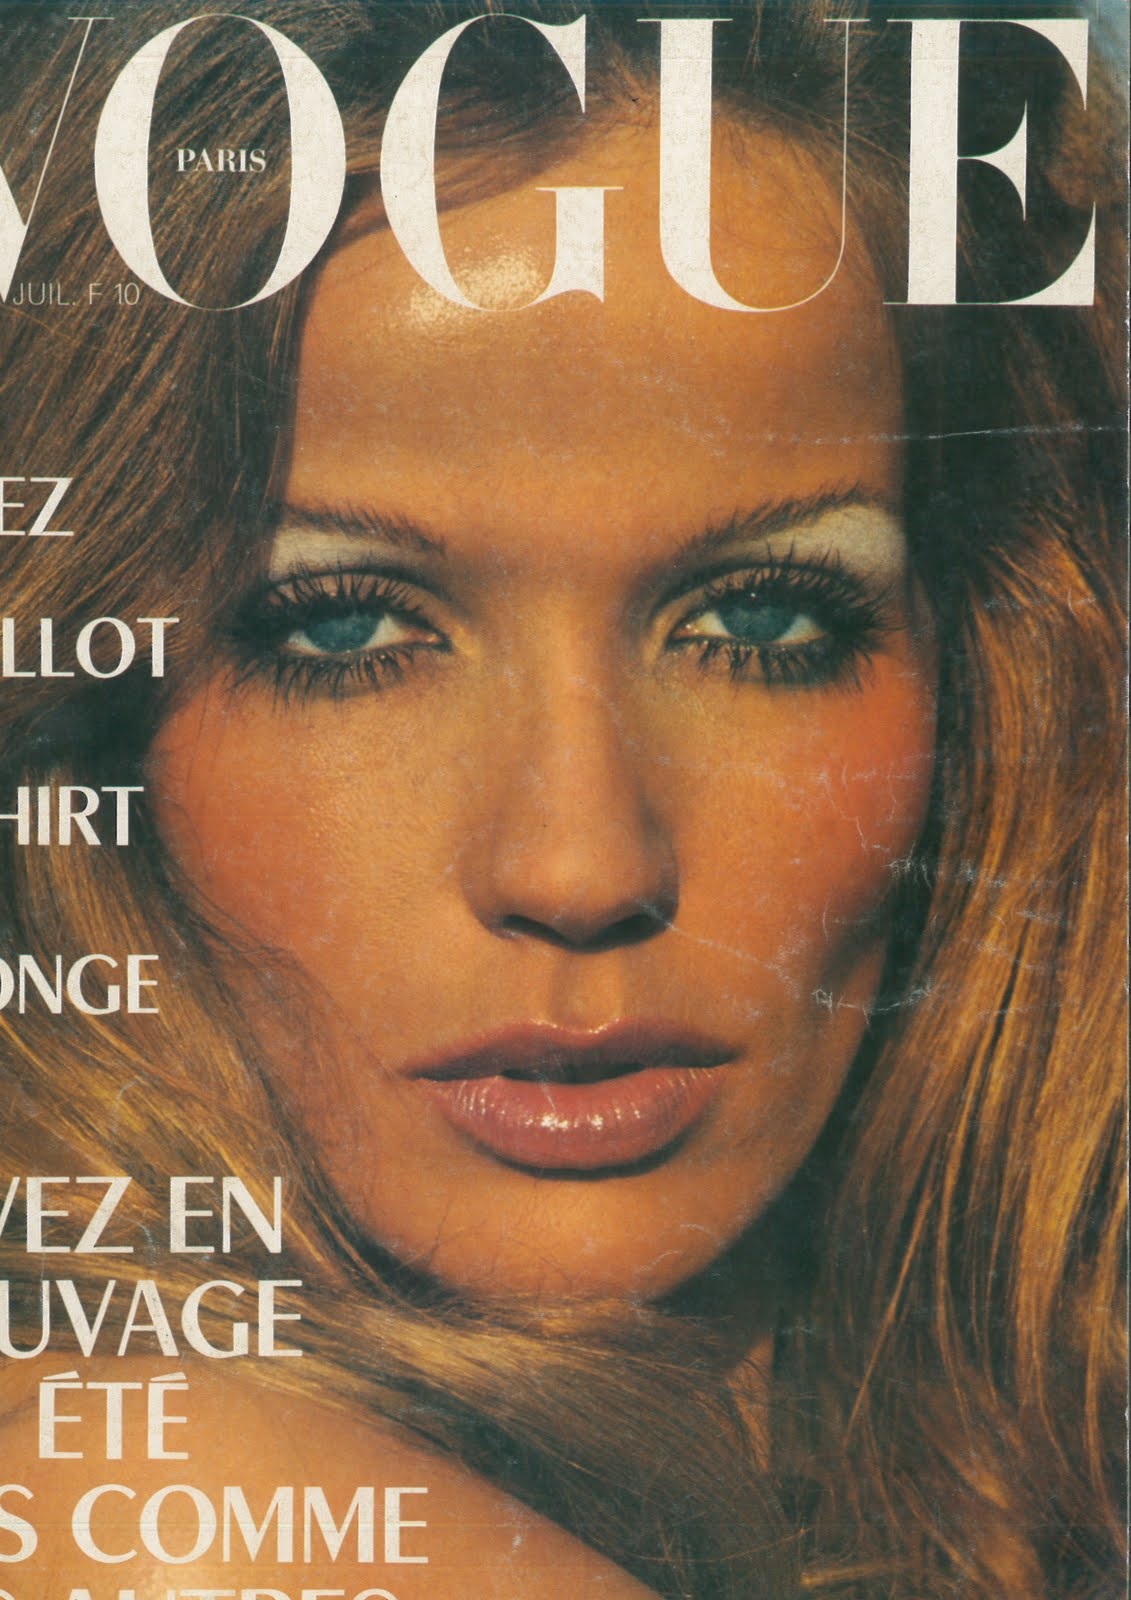 ba0f215afd June/July 1973 - Paris Vogue. Vivez en Maillot